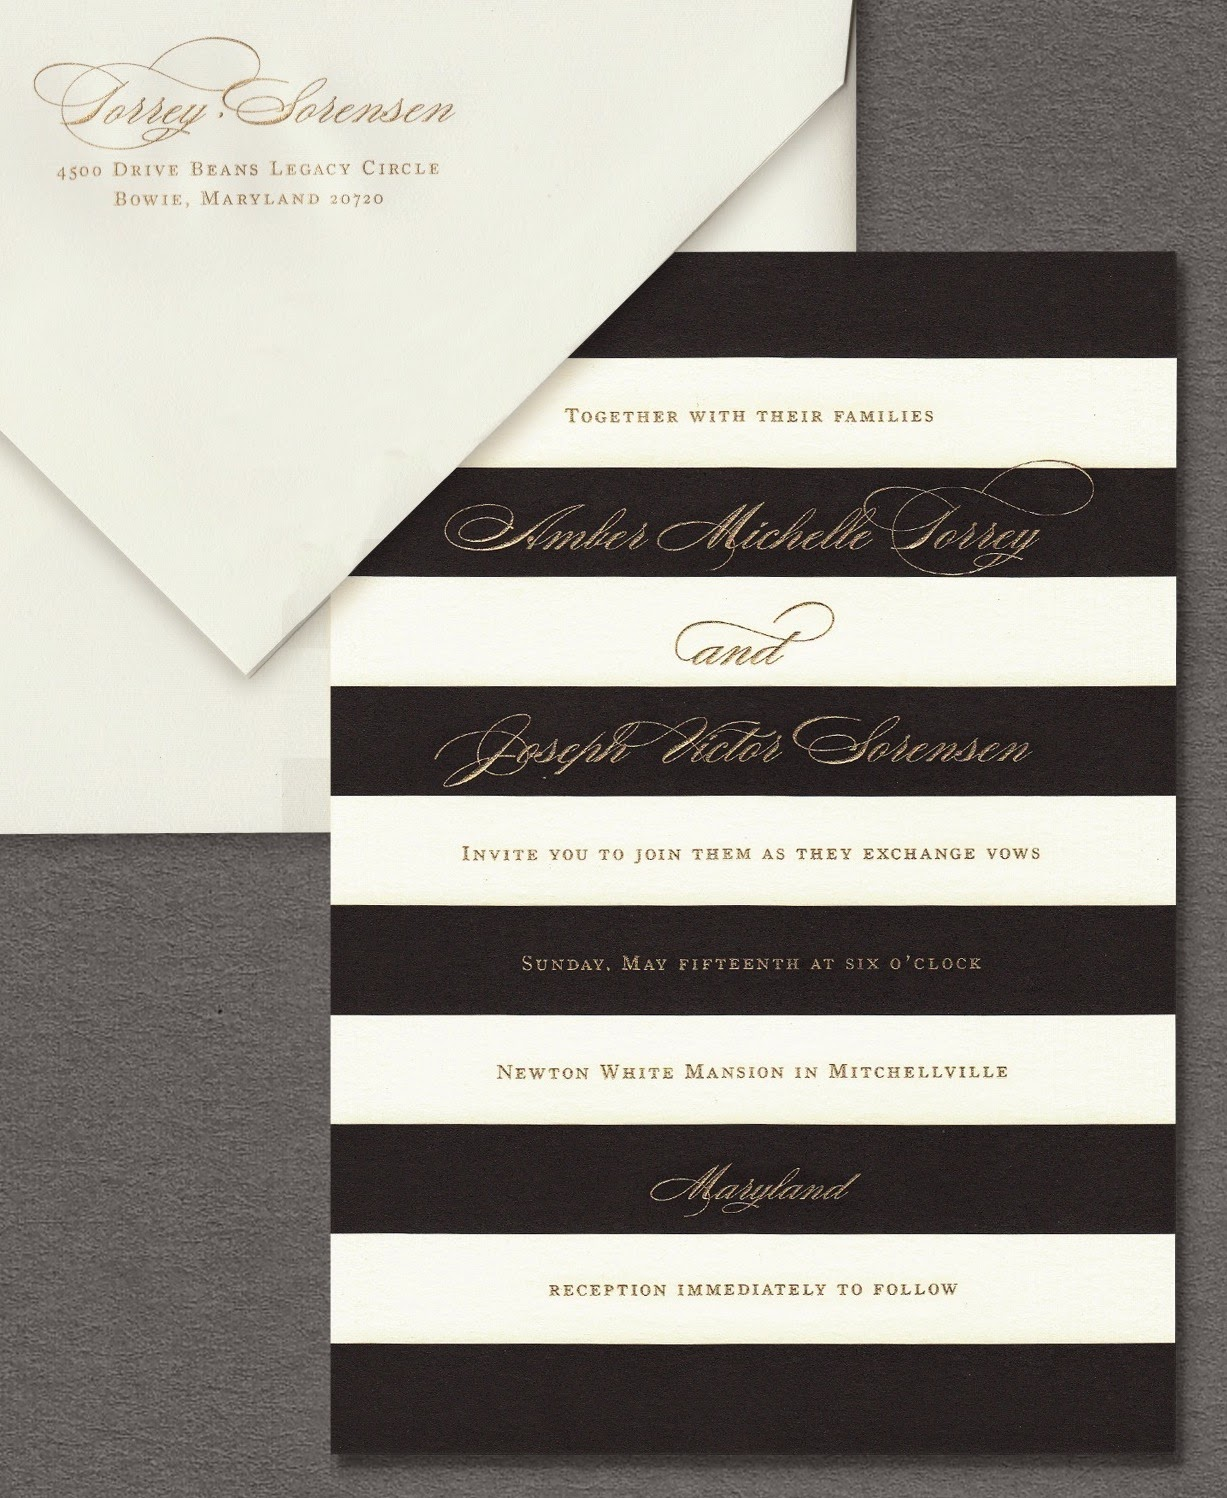 William arthur blog the bold black and white stripes that define this invitation suite are quintessentially vera wang the addition of gold engraving to this design makes it stopboris Images